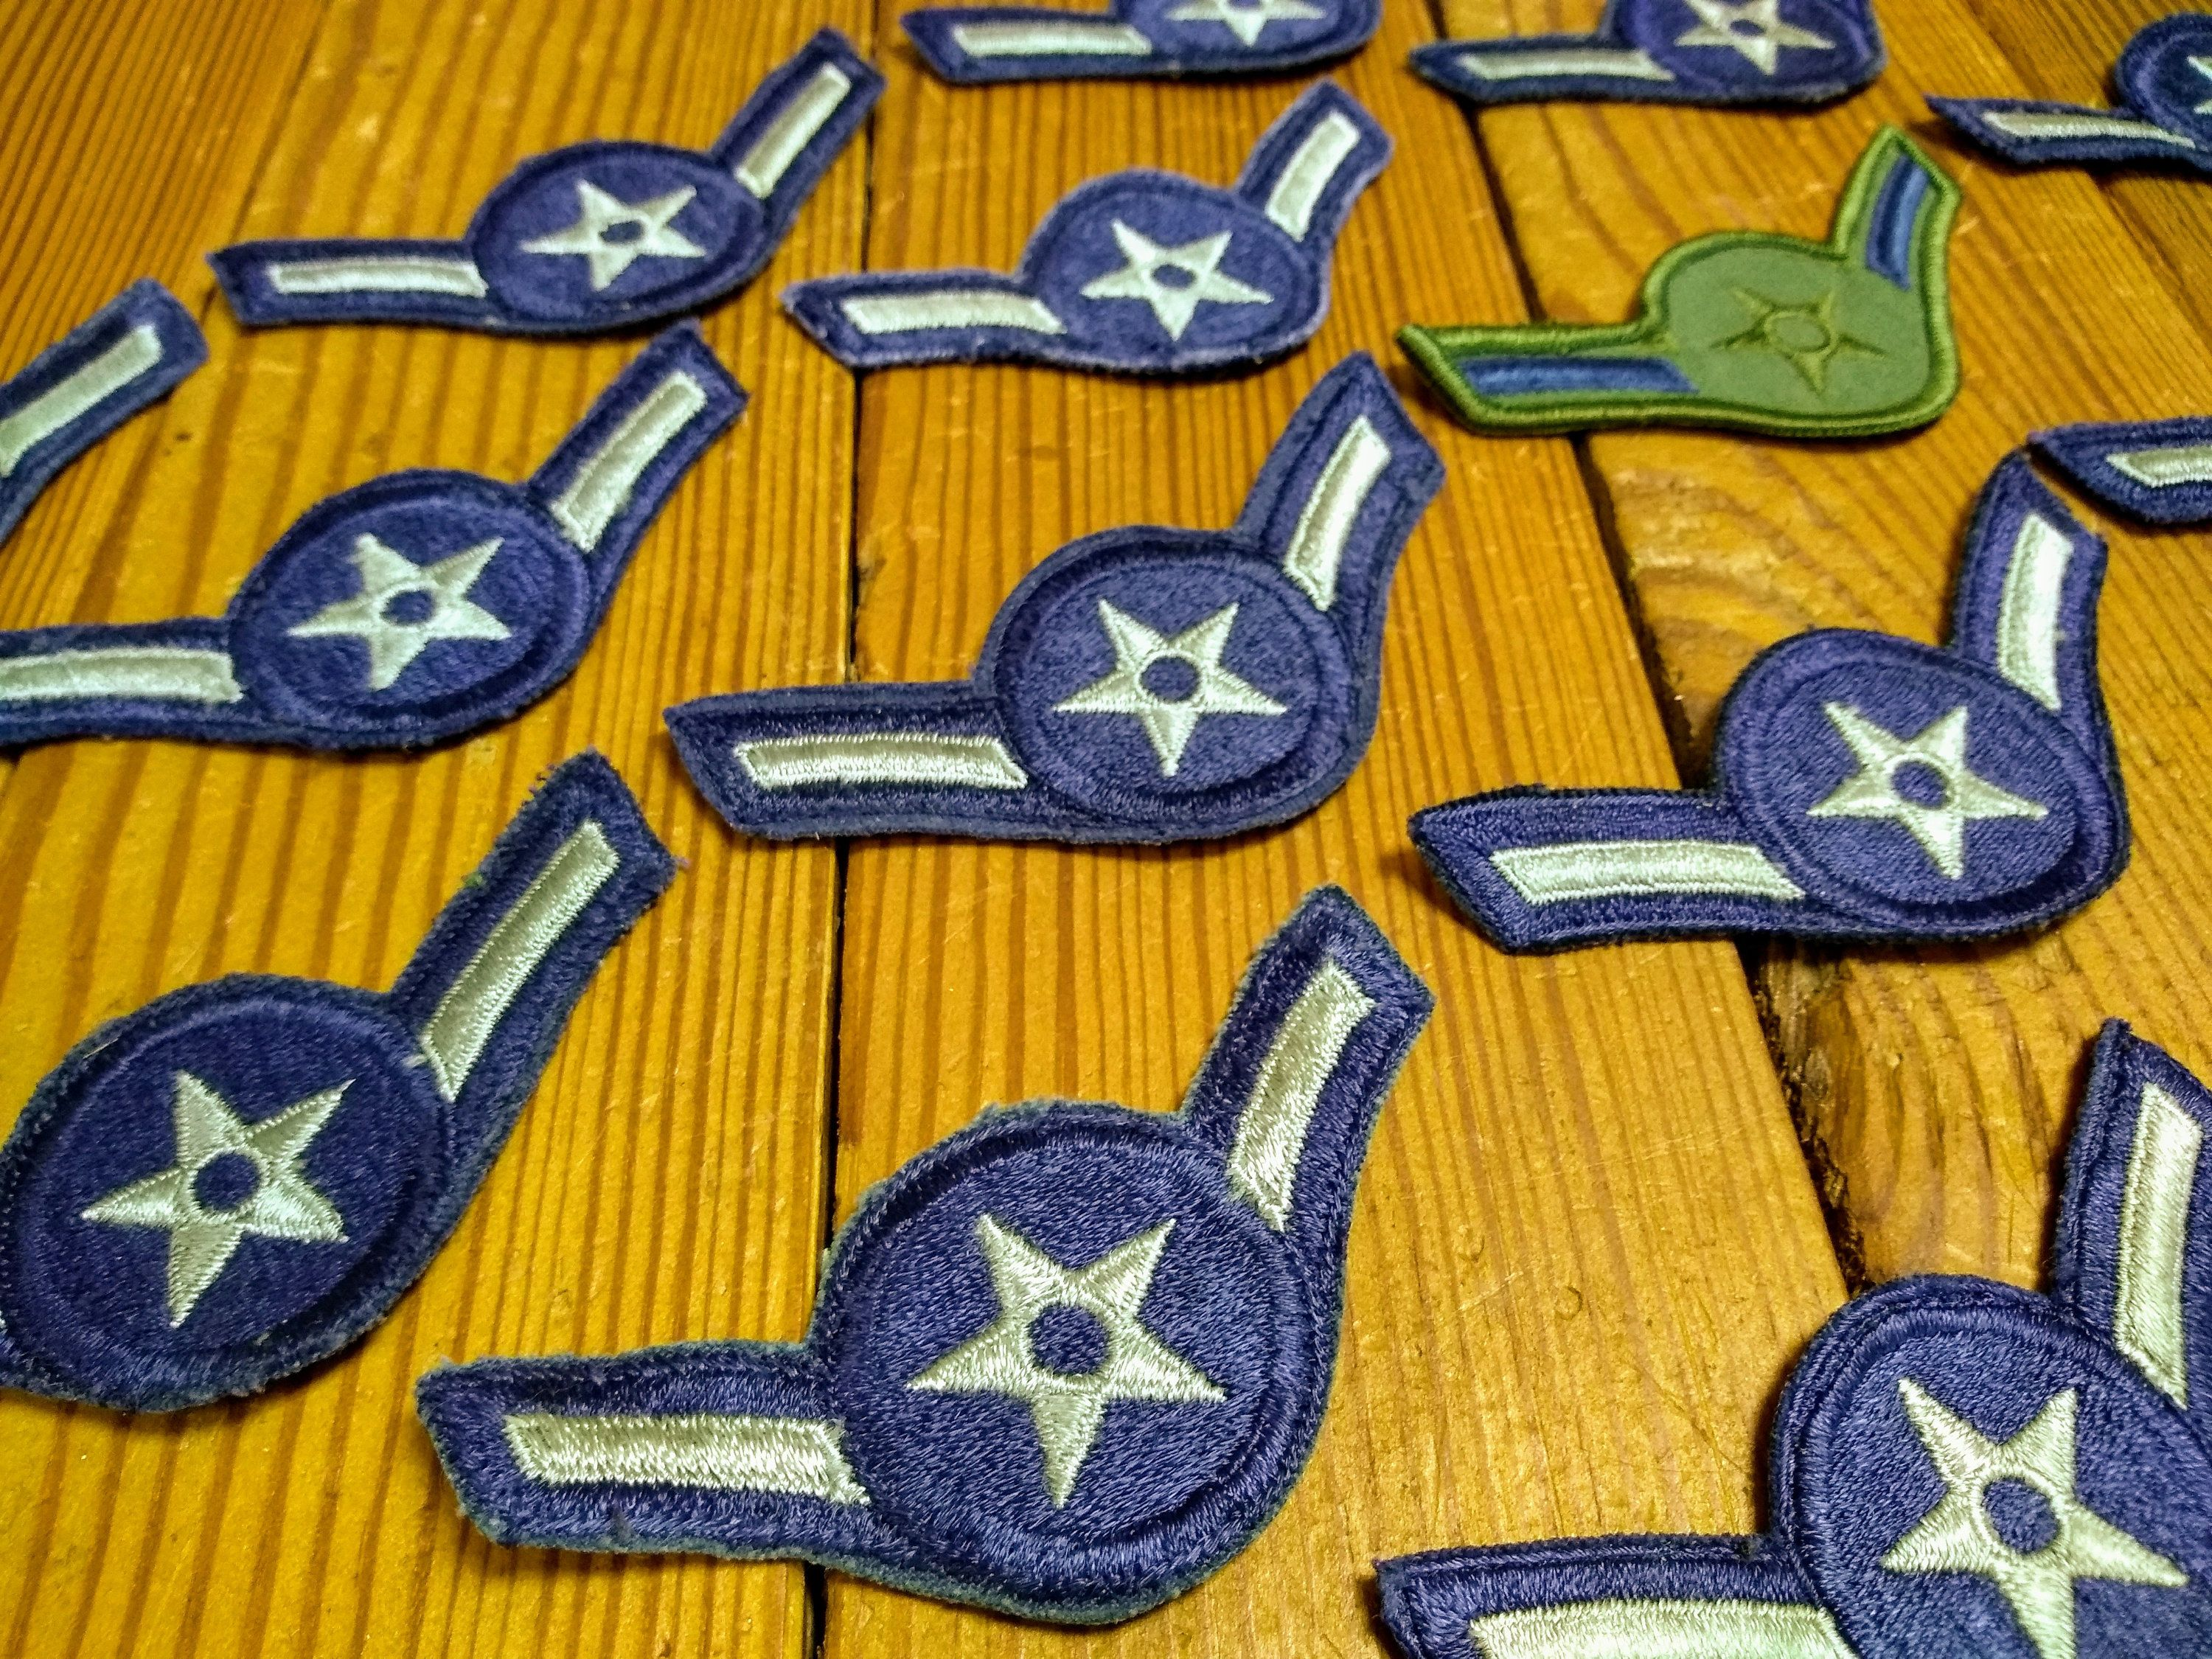 Vintage Military Patch; Airman Rank Patches; Military